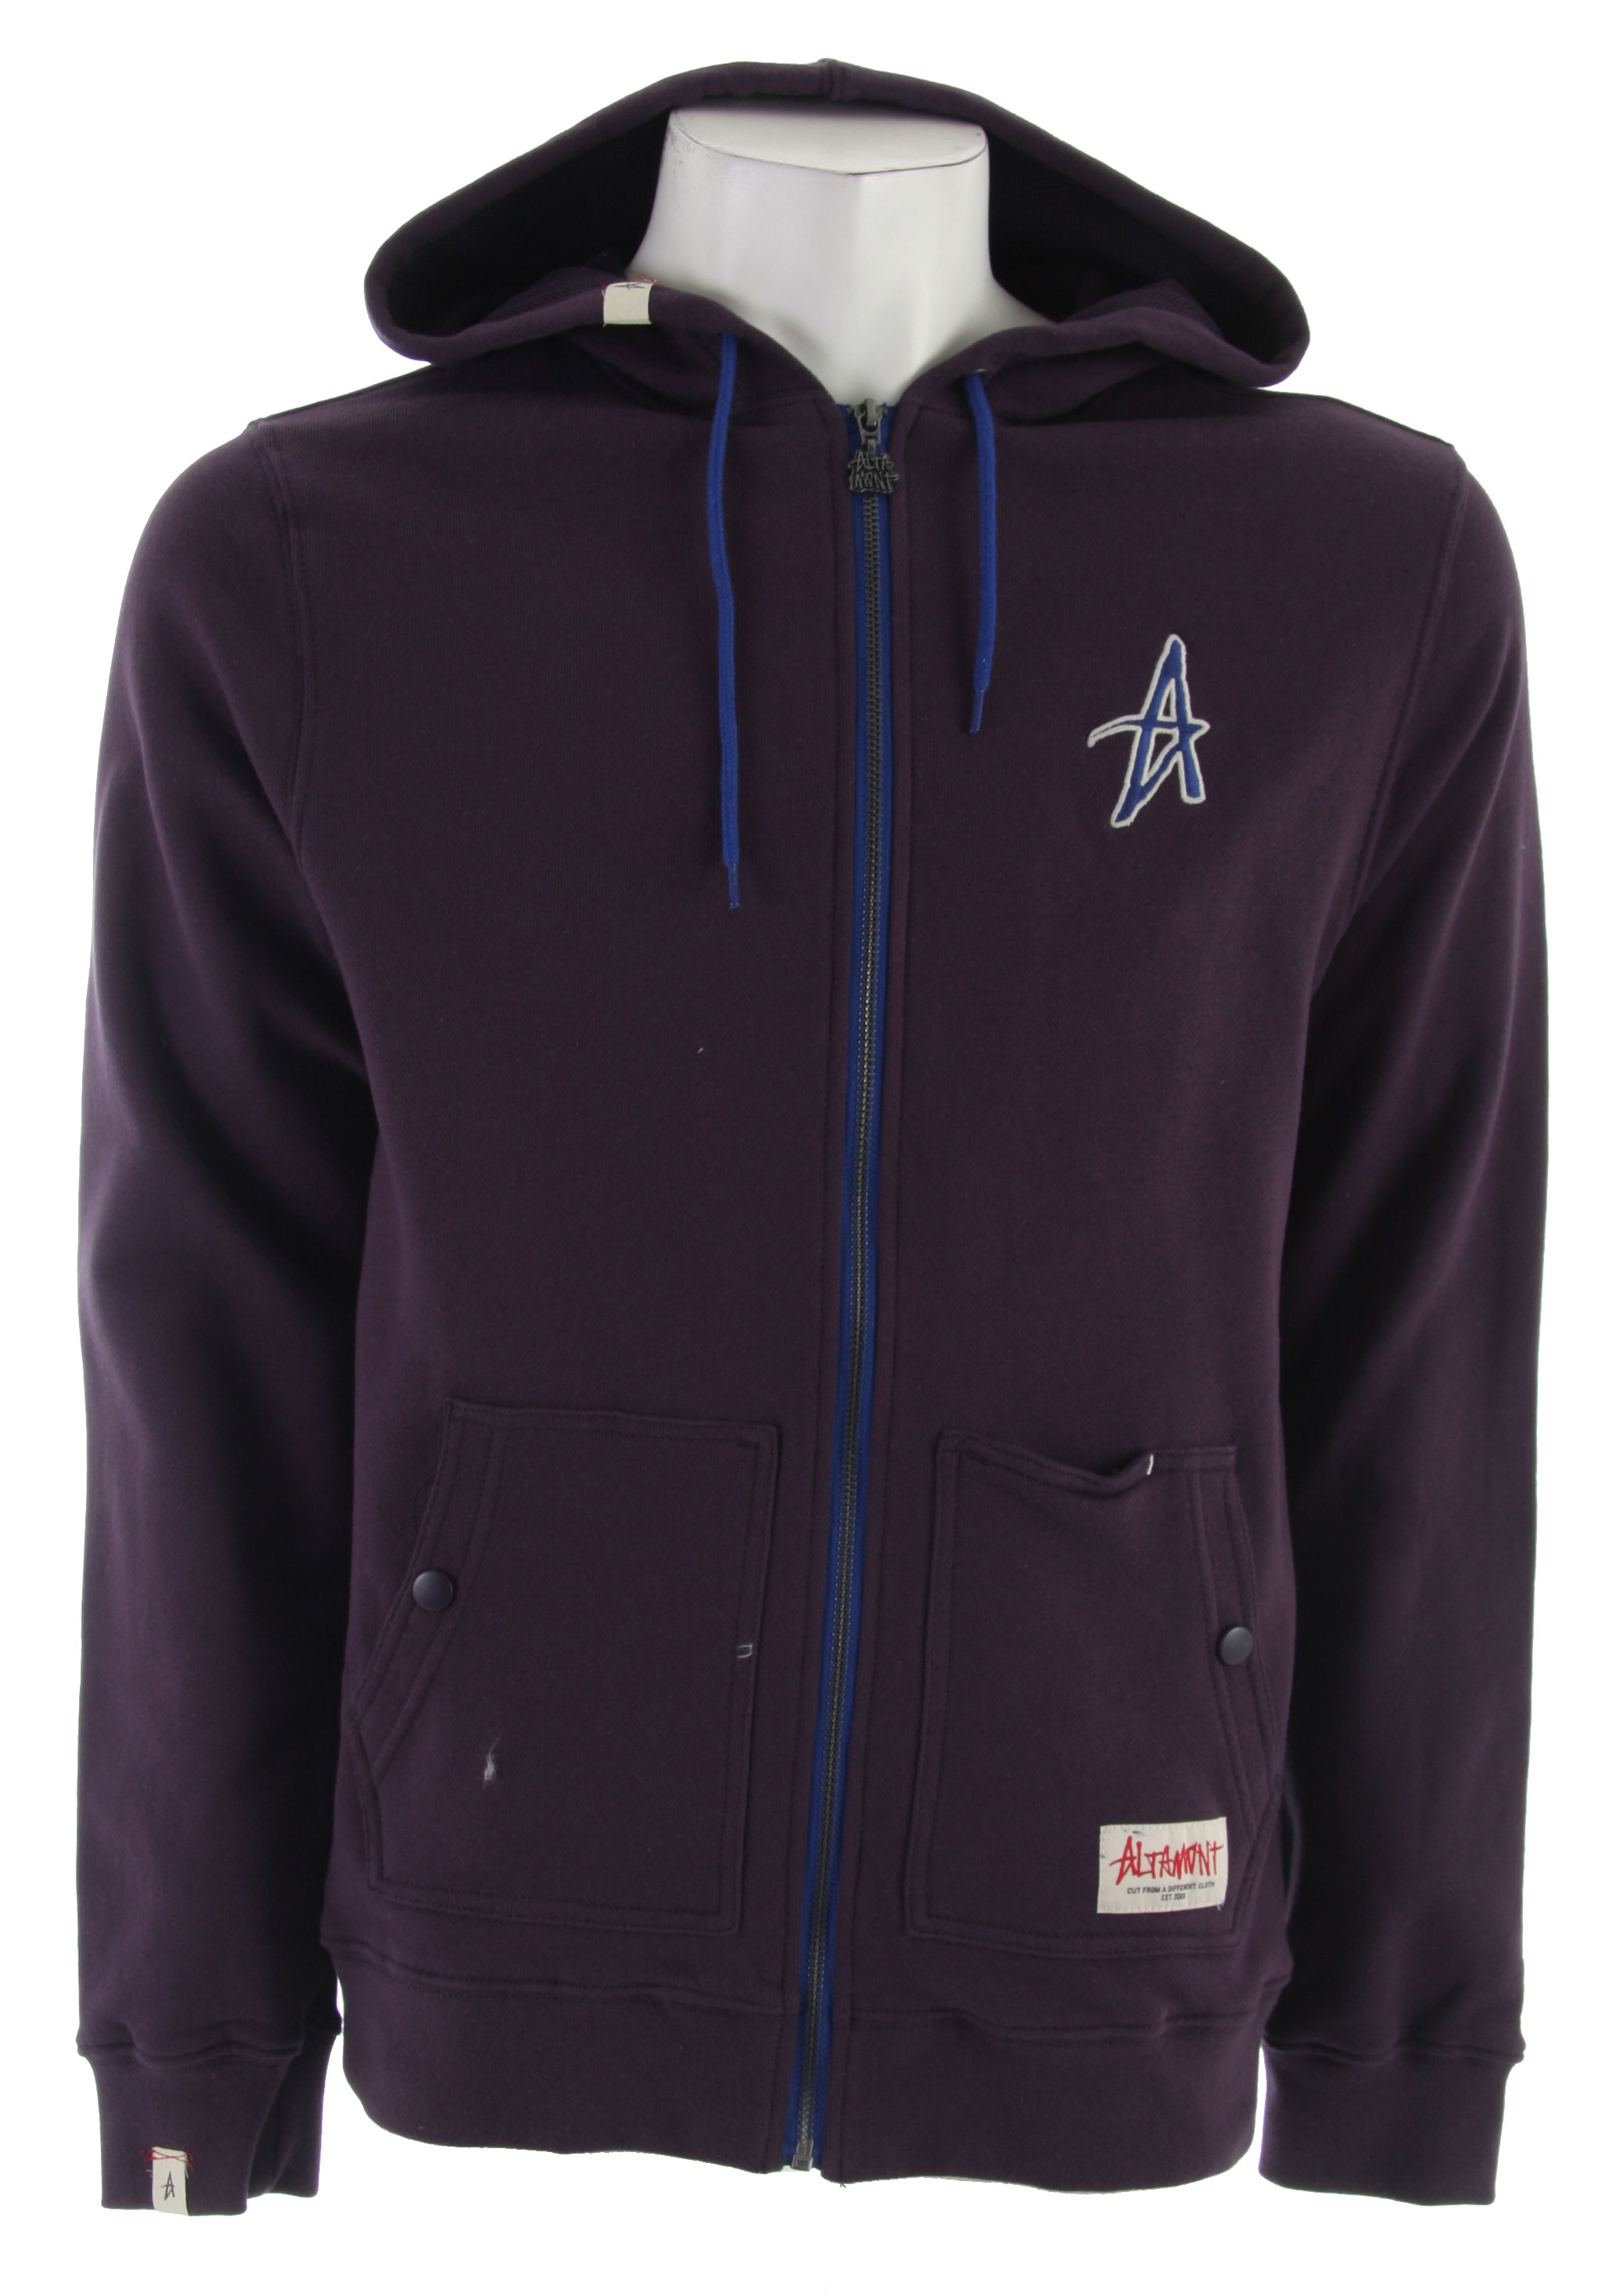 Fitness The Barrio Zip Hoodie from Altamont.Key Features of the Altamont Barrio Zip Hoodie Deep Purple:100% cotton zip hood fleece Contrast front zip Mesh lined hood Embroidered A logo on chest Altamont custom trim package - $38.95